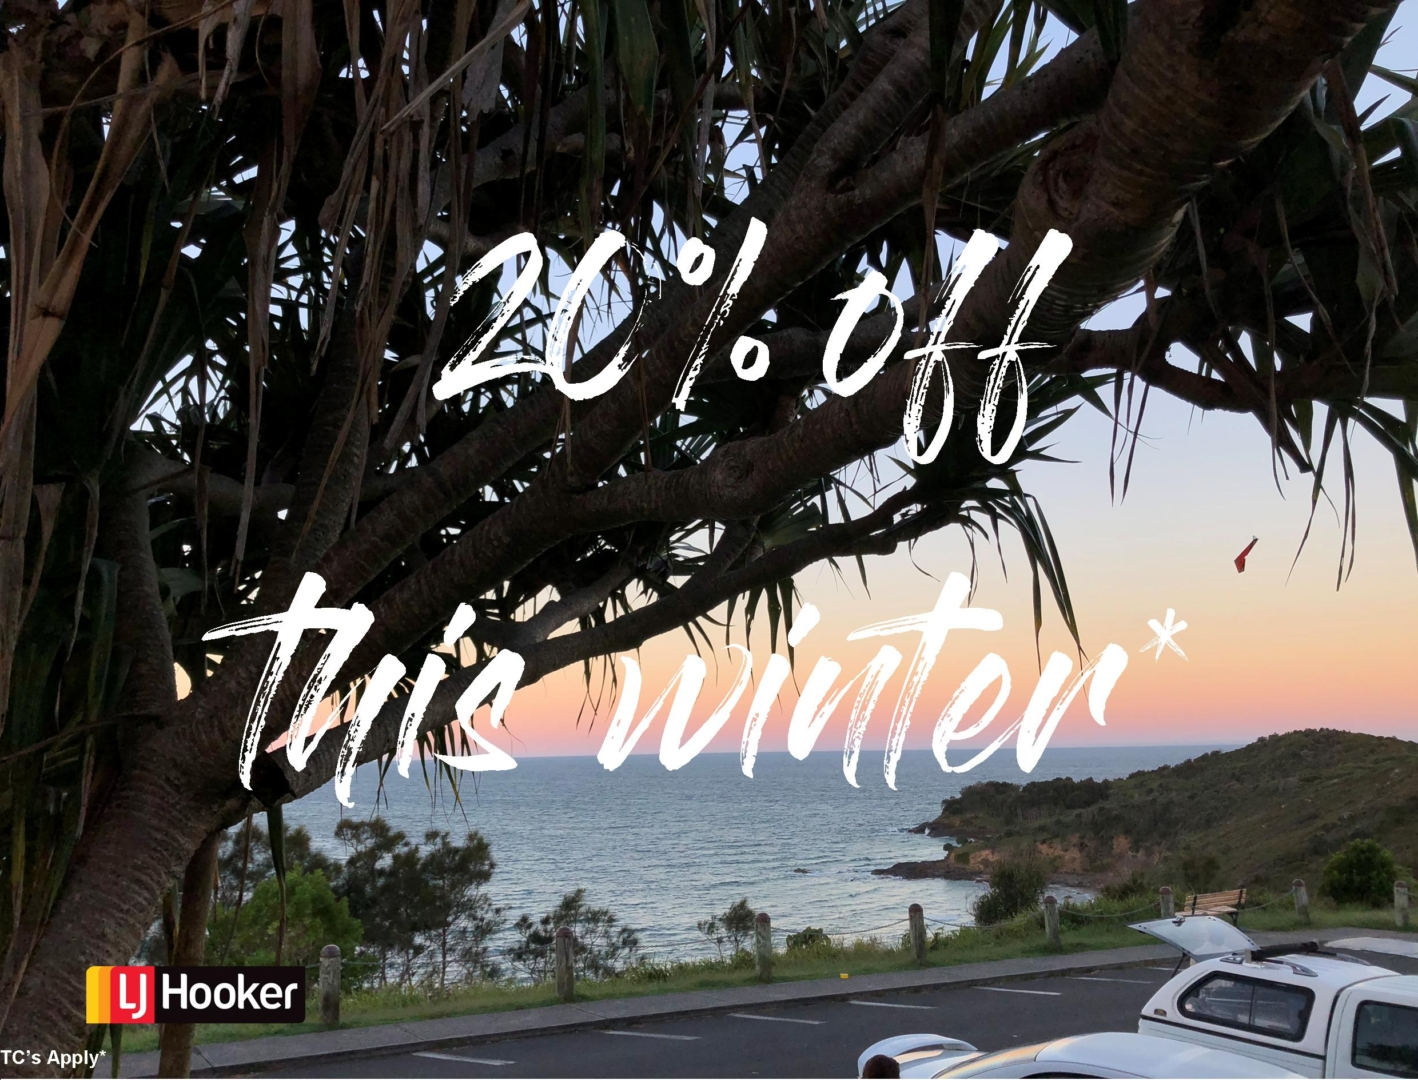 20% off this winter!